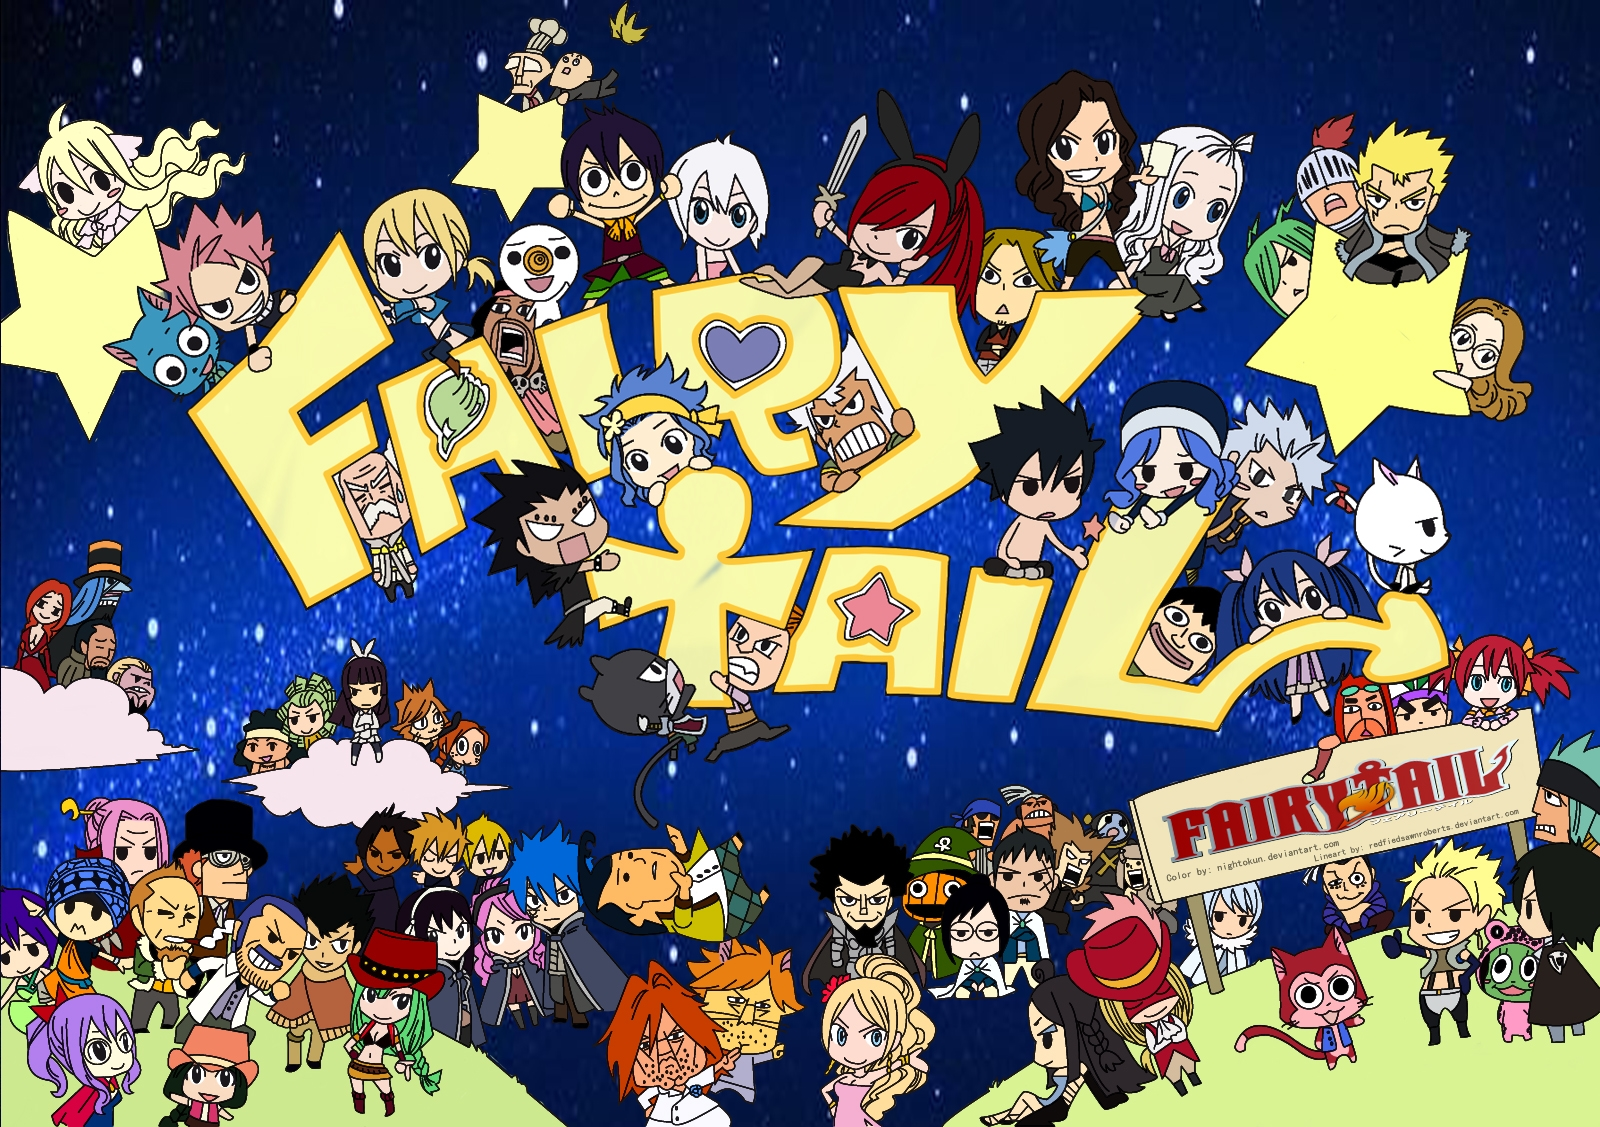 Fairy tail background. Im genes gang full